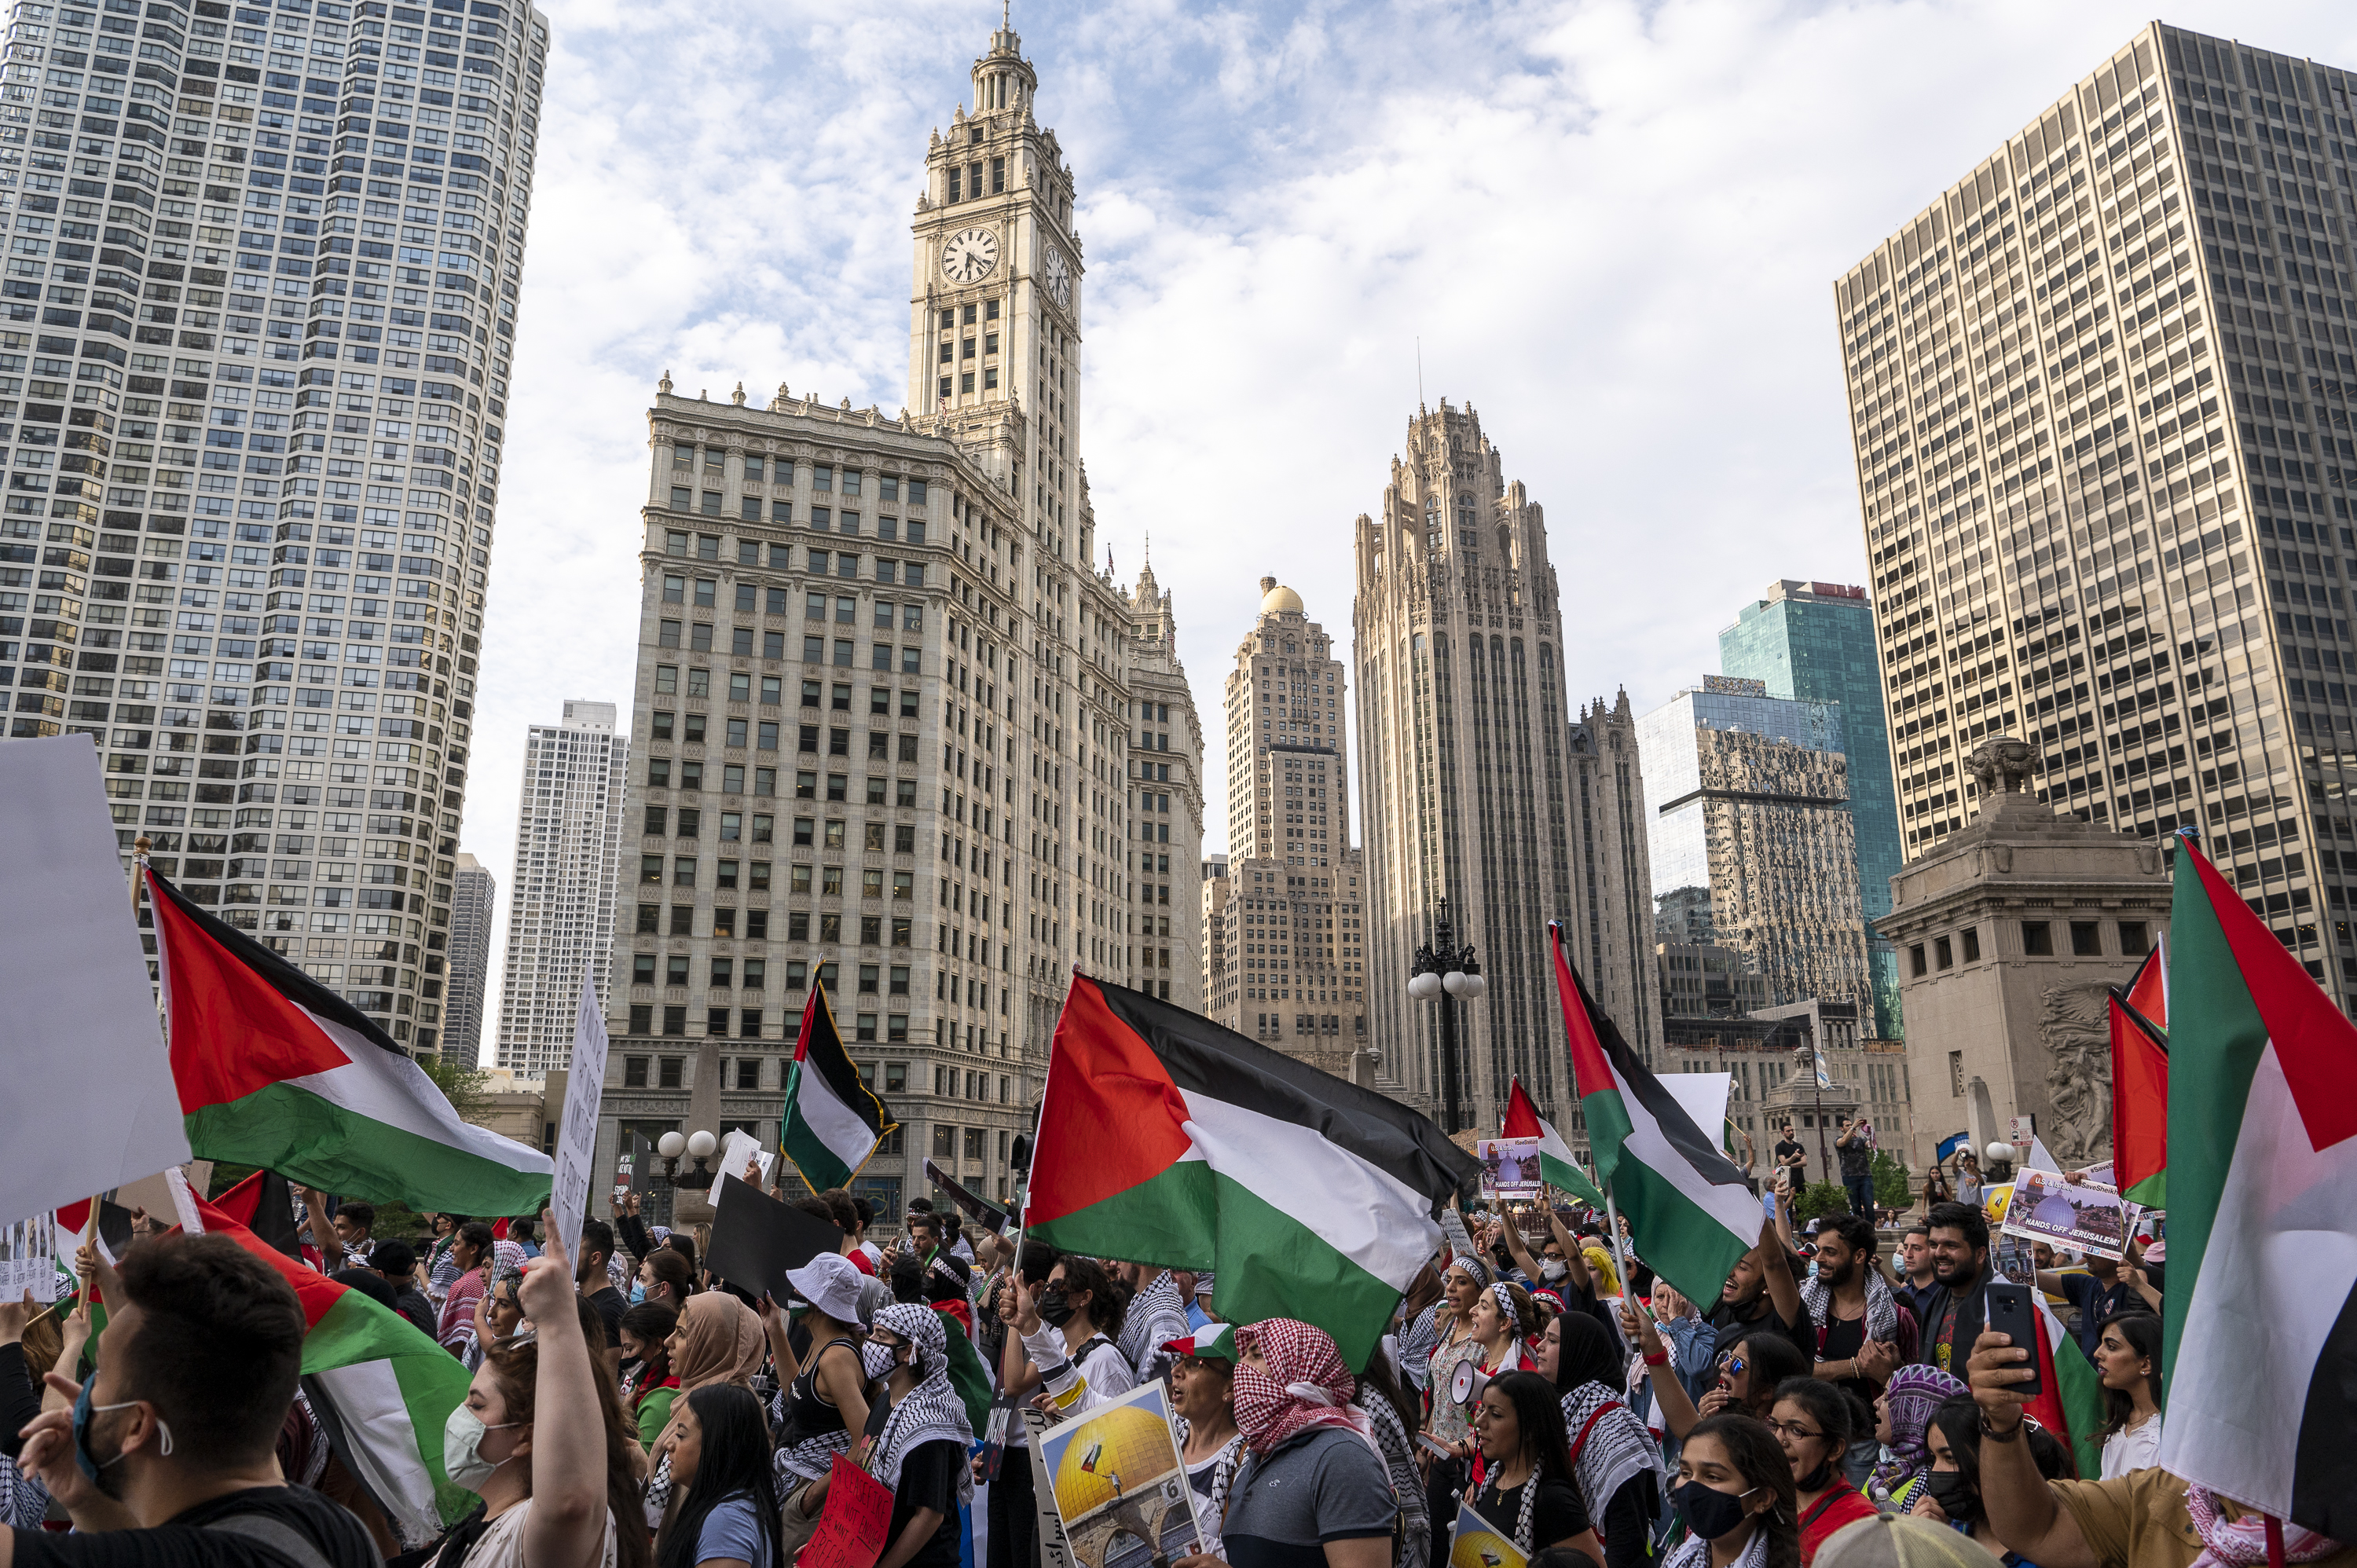 Around a thousand people march on Wacker Dr. in the Loop, during a pro-Palestinian protest, Friday, May 21, 2021.